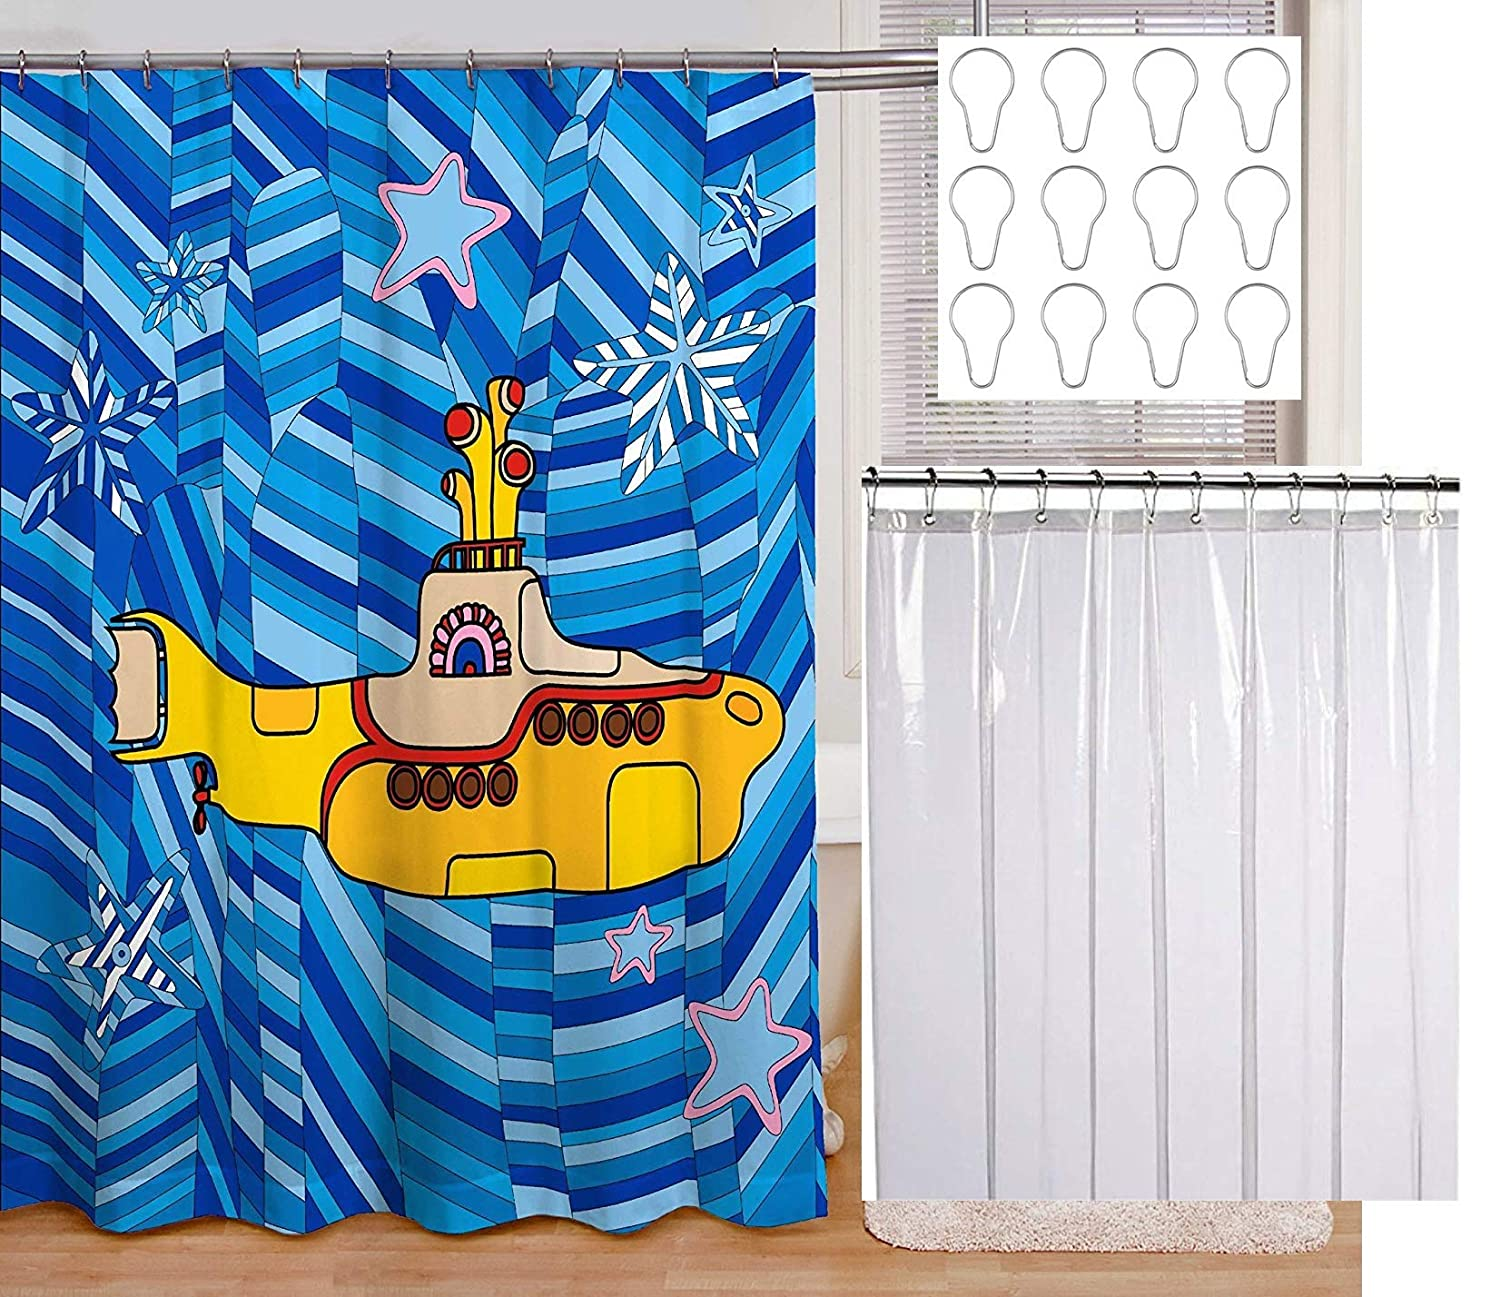 My Posh Home Beatles Yellow Submarine Blue Shower Curtain Set with Waterproof Liner and 12 Metal Rings